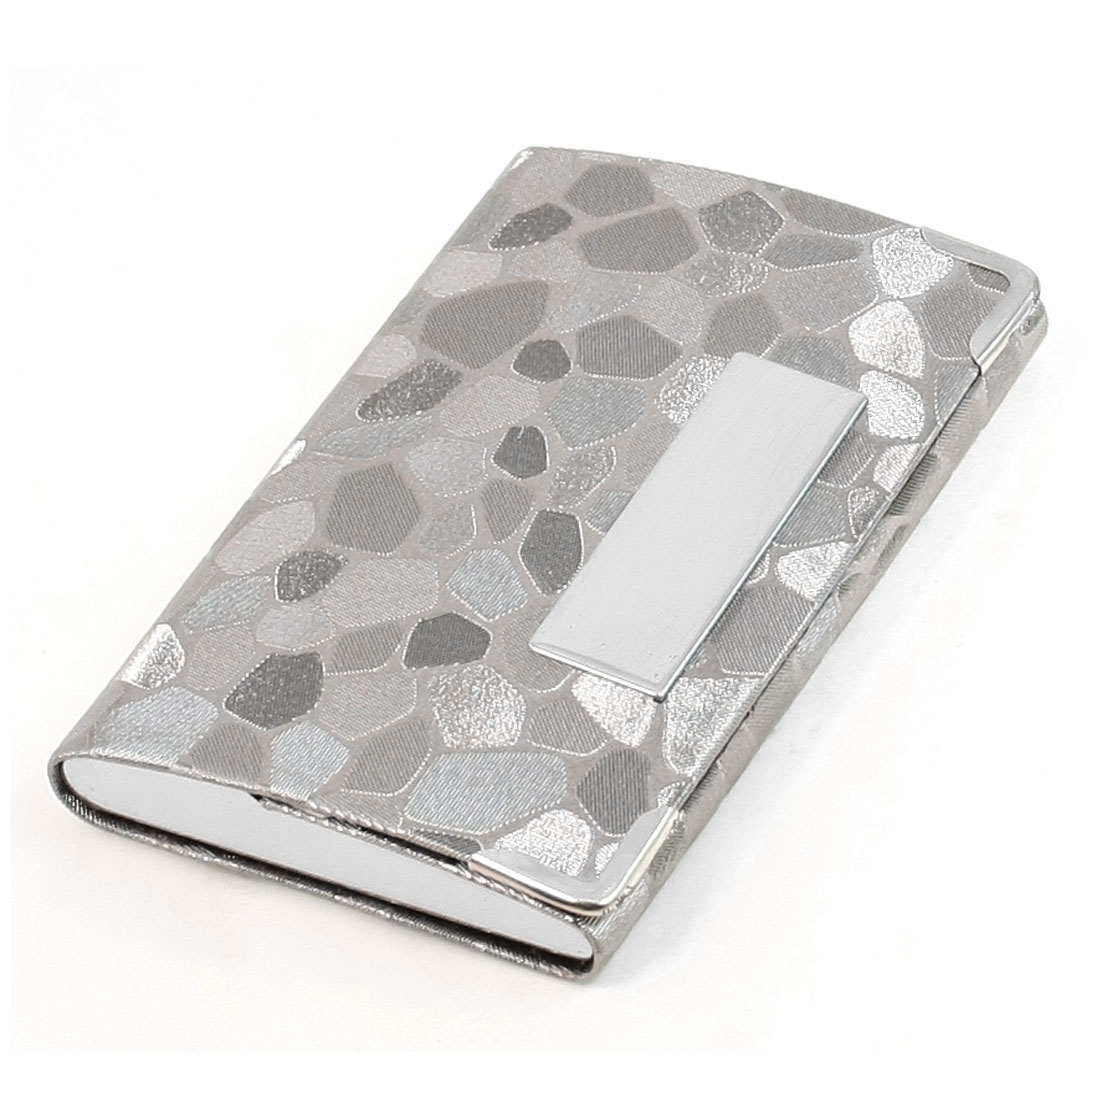 Mirrored Metal Detail Gray Block Stone Prints Magnetic Flap Closure Business Card Holder